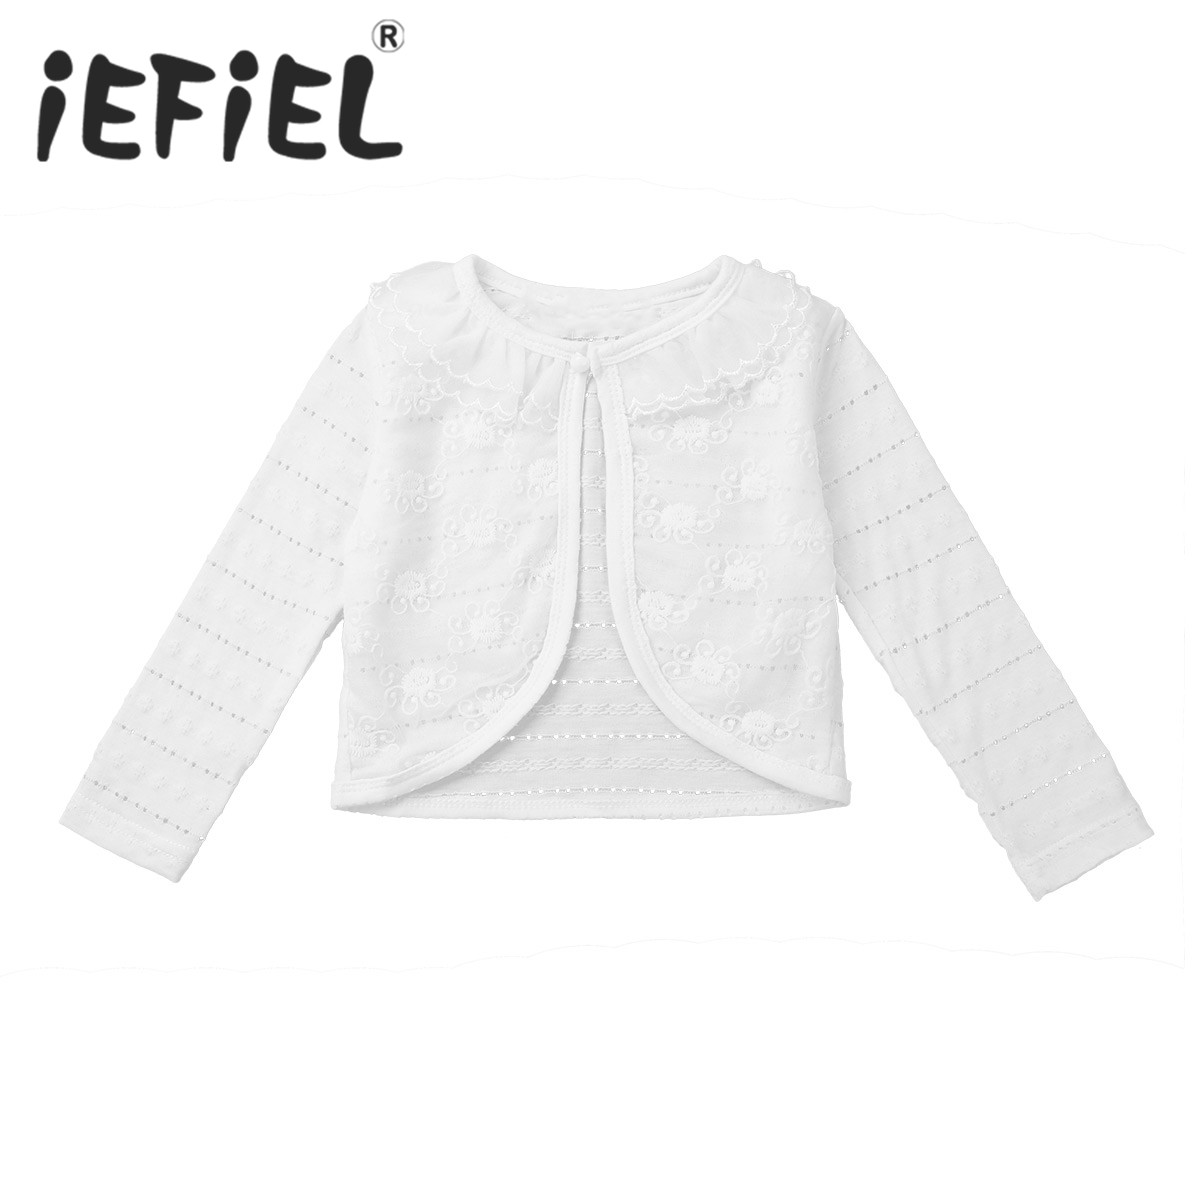 480b1b7ade iEFiEL Kids Girls Children Baby Cape Short Jacket Princess Party Wool Cloak  Girls Faux Fur Bolero Shrug Spring Wedding Jacket